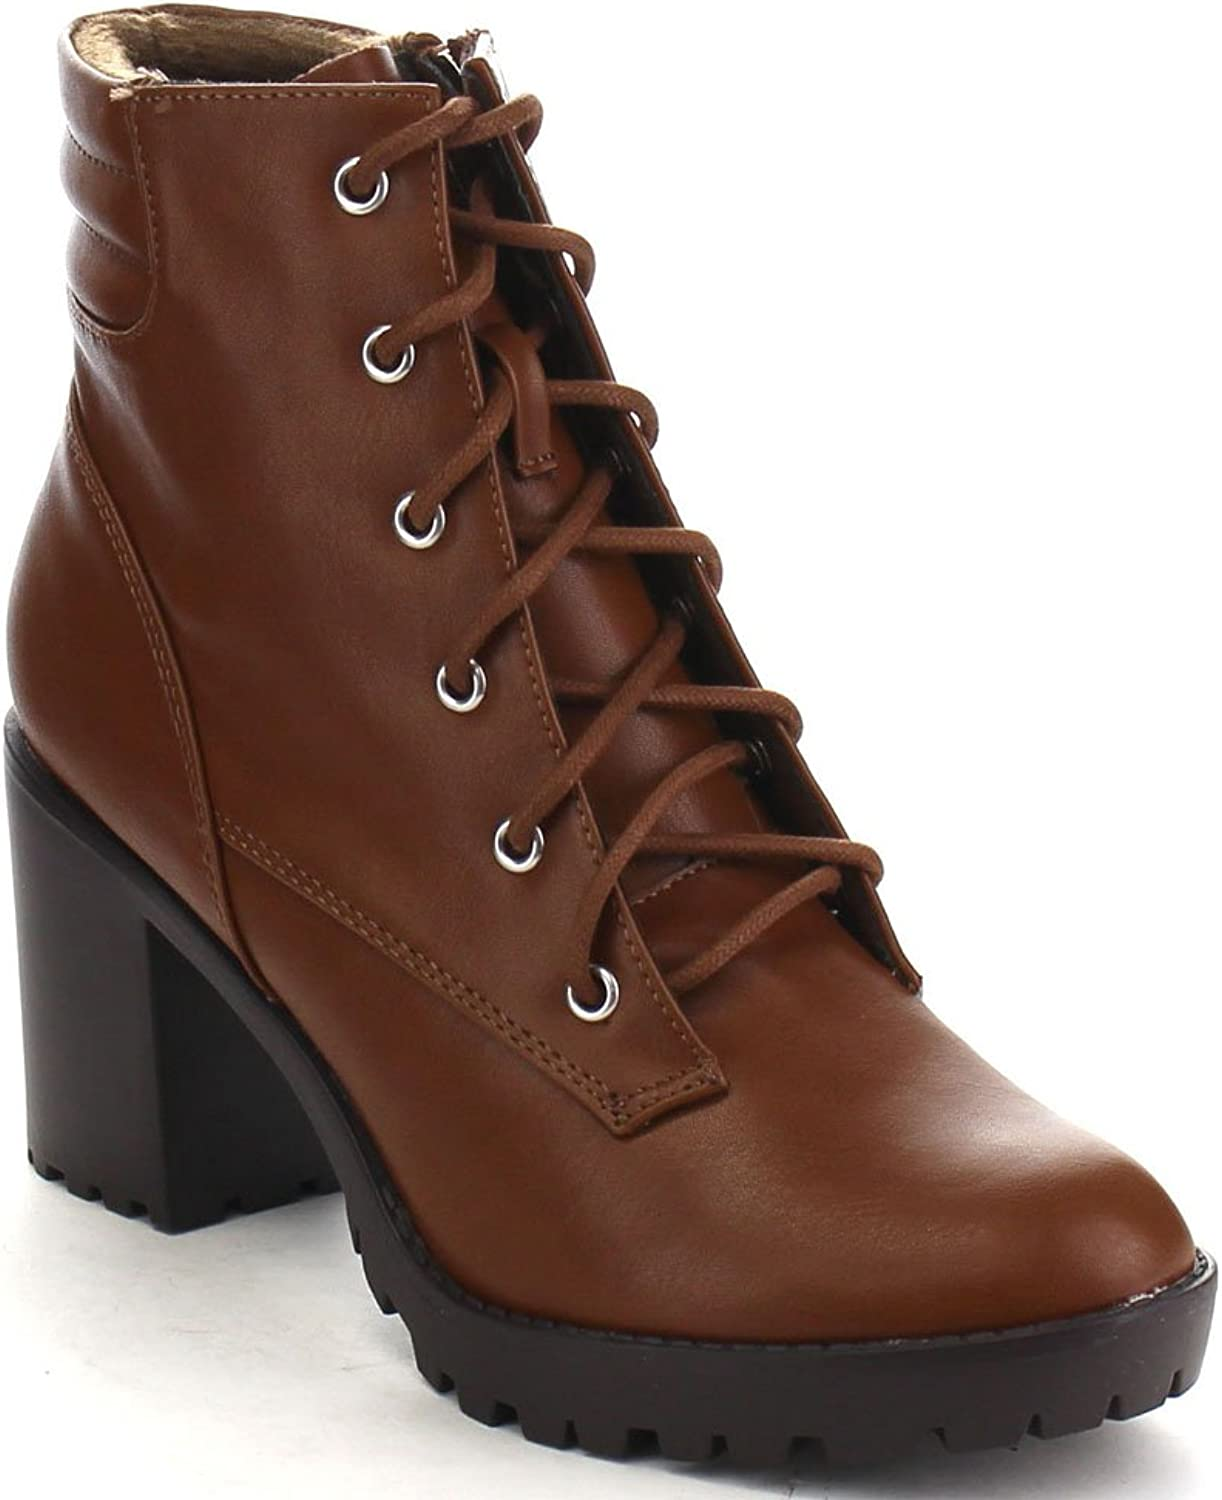 Breckelles RANGER-21 Women's Basic Block Heel Lace Up Military Ankle Booties